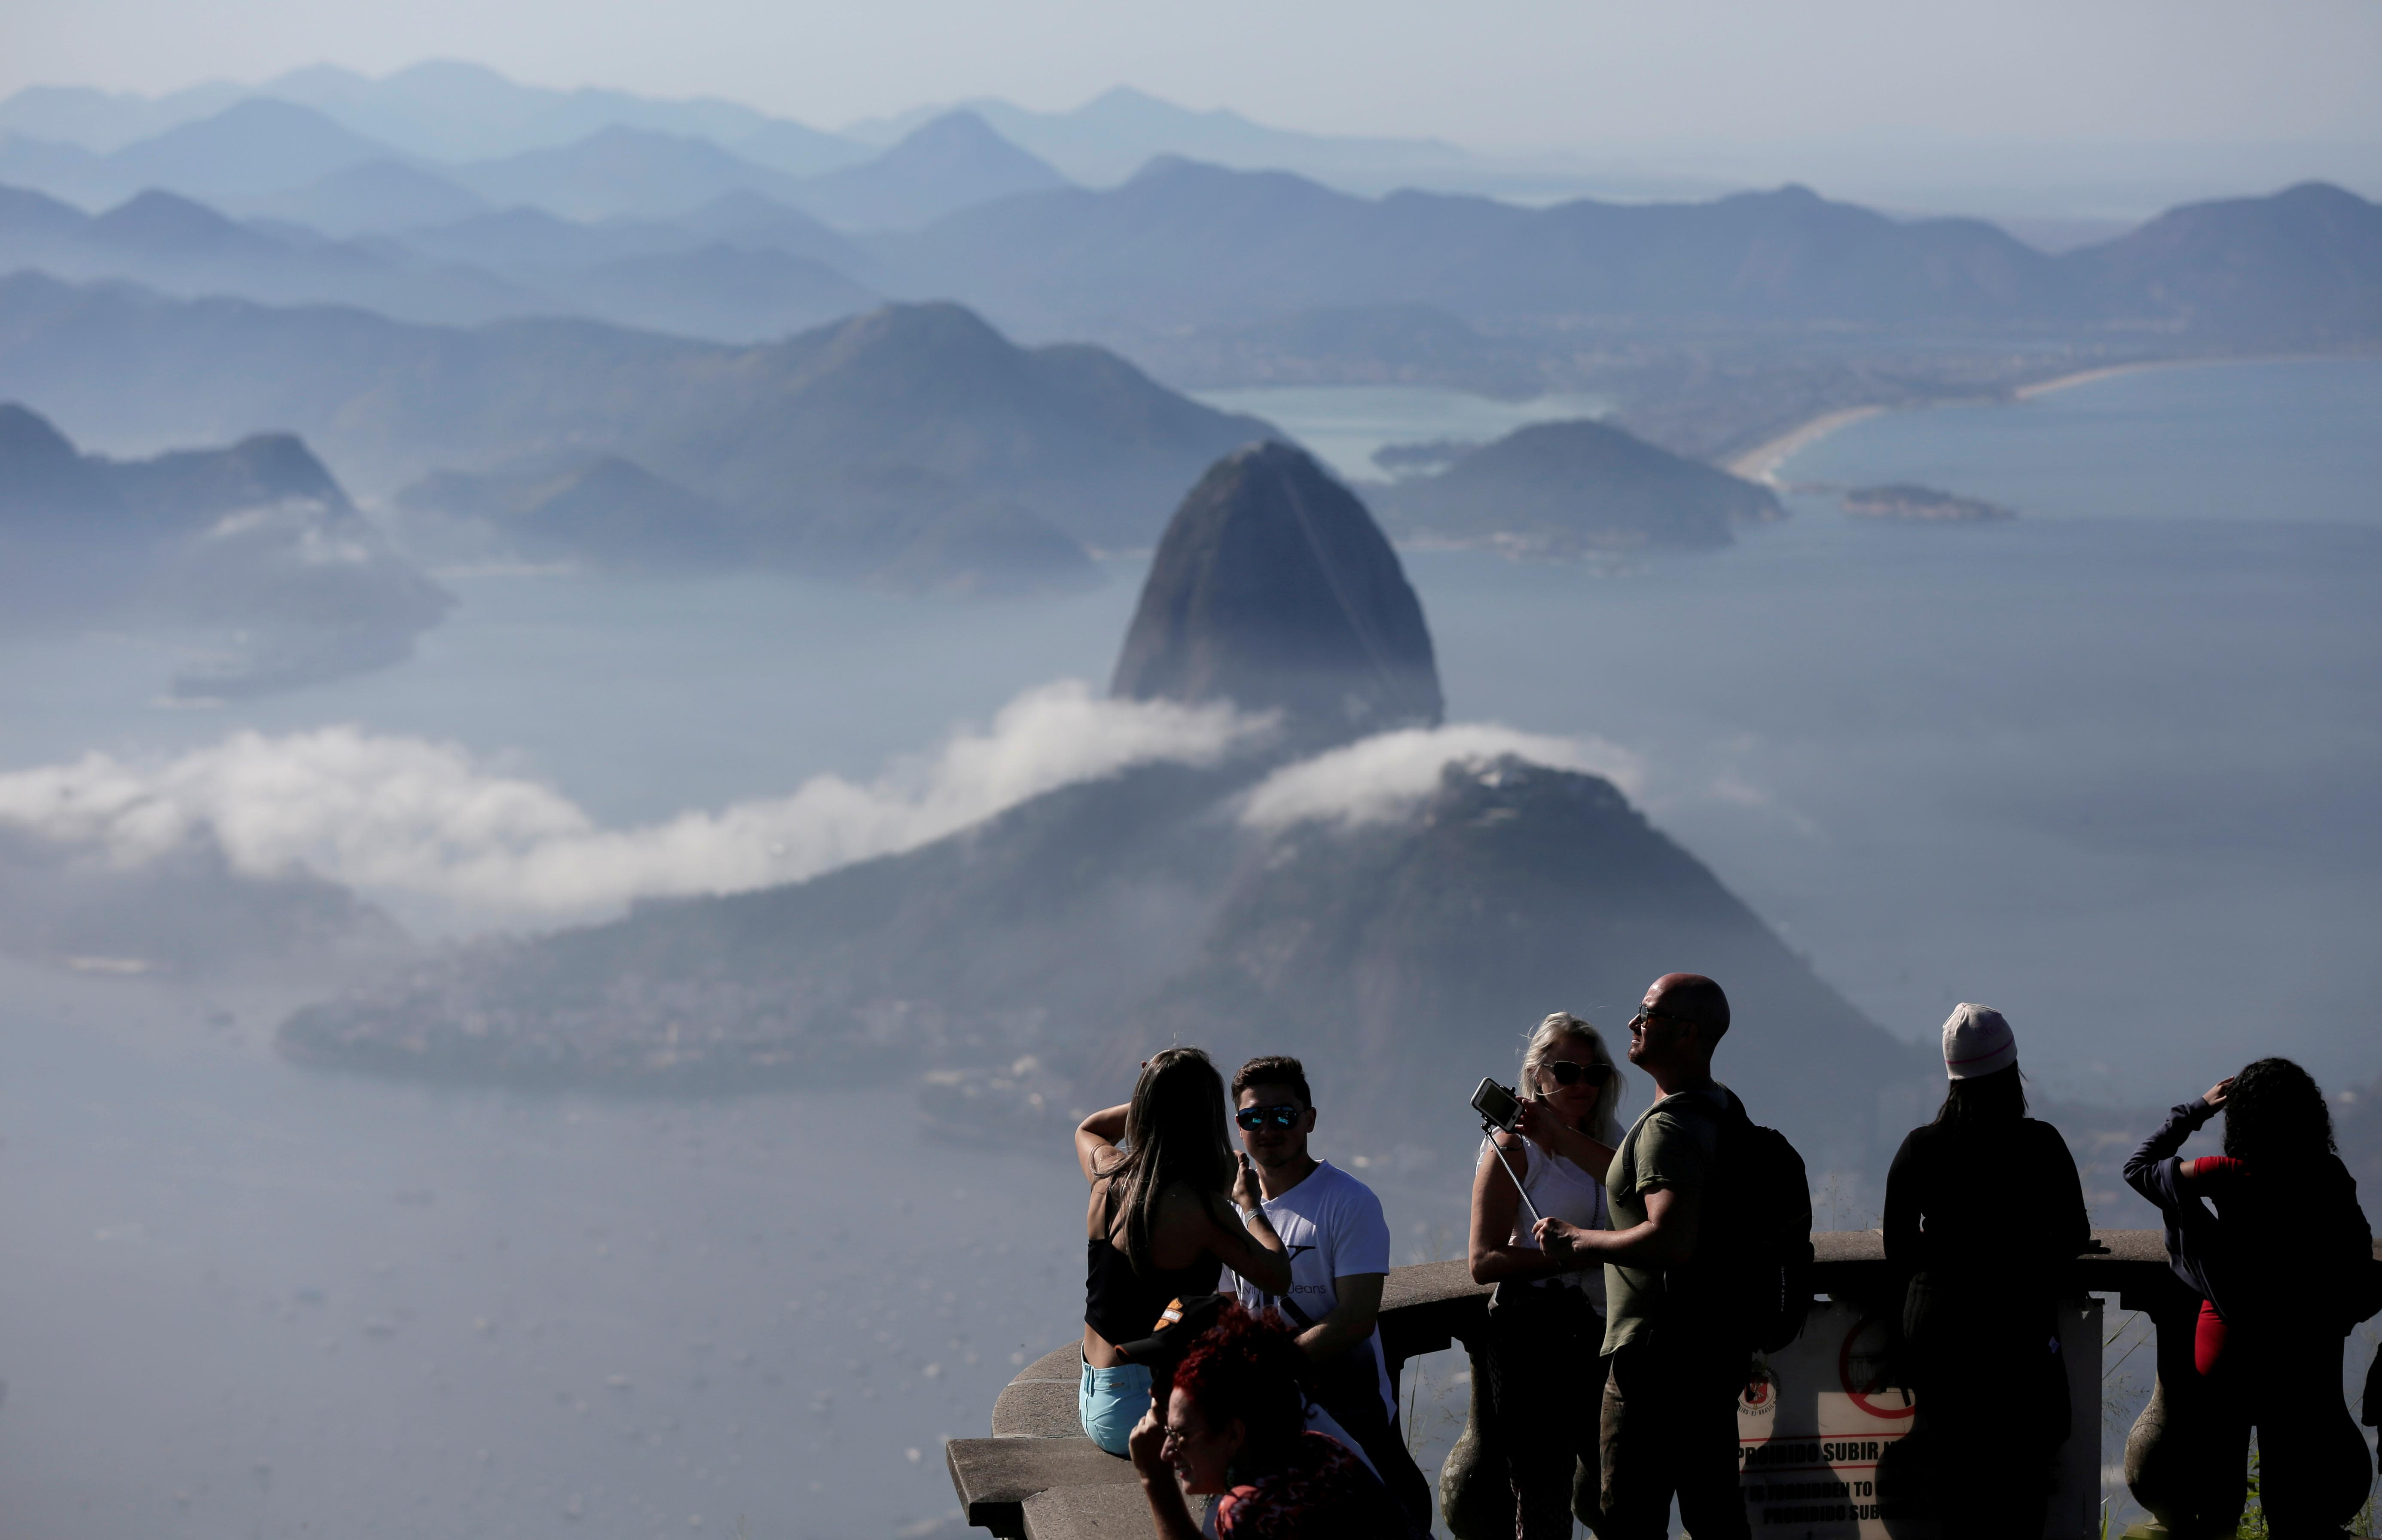 Brazil waives visas for visitors from U.S., Canada, Australia, Japan